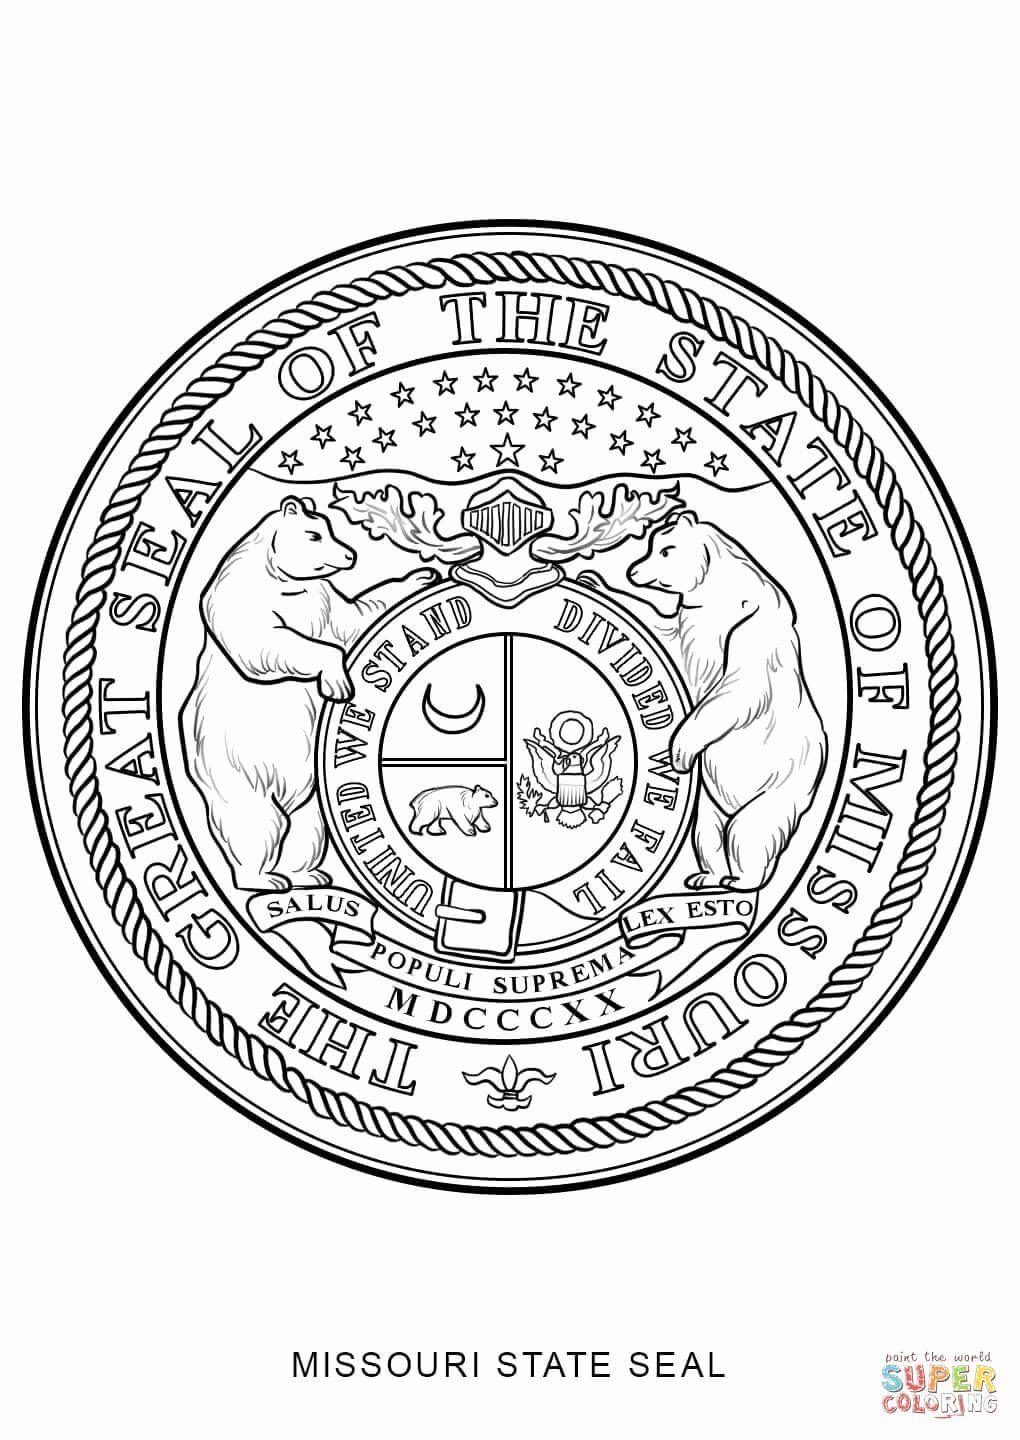 Maryland State Flag Coloring Page Luxury Missouri State Seal Coloring Page Flag Coloring Pages Coloring Pages State Flags